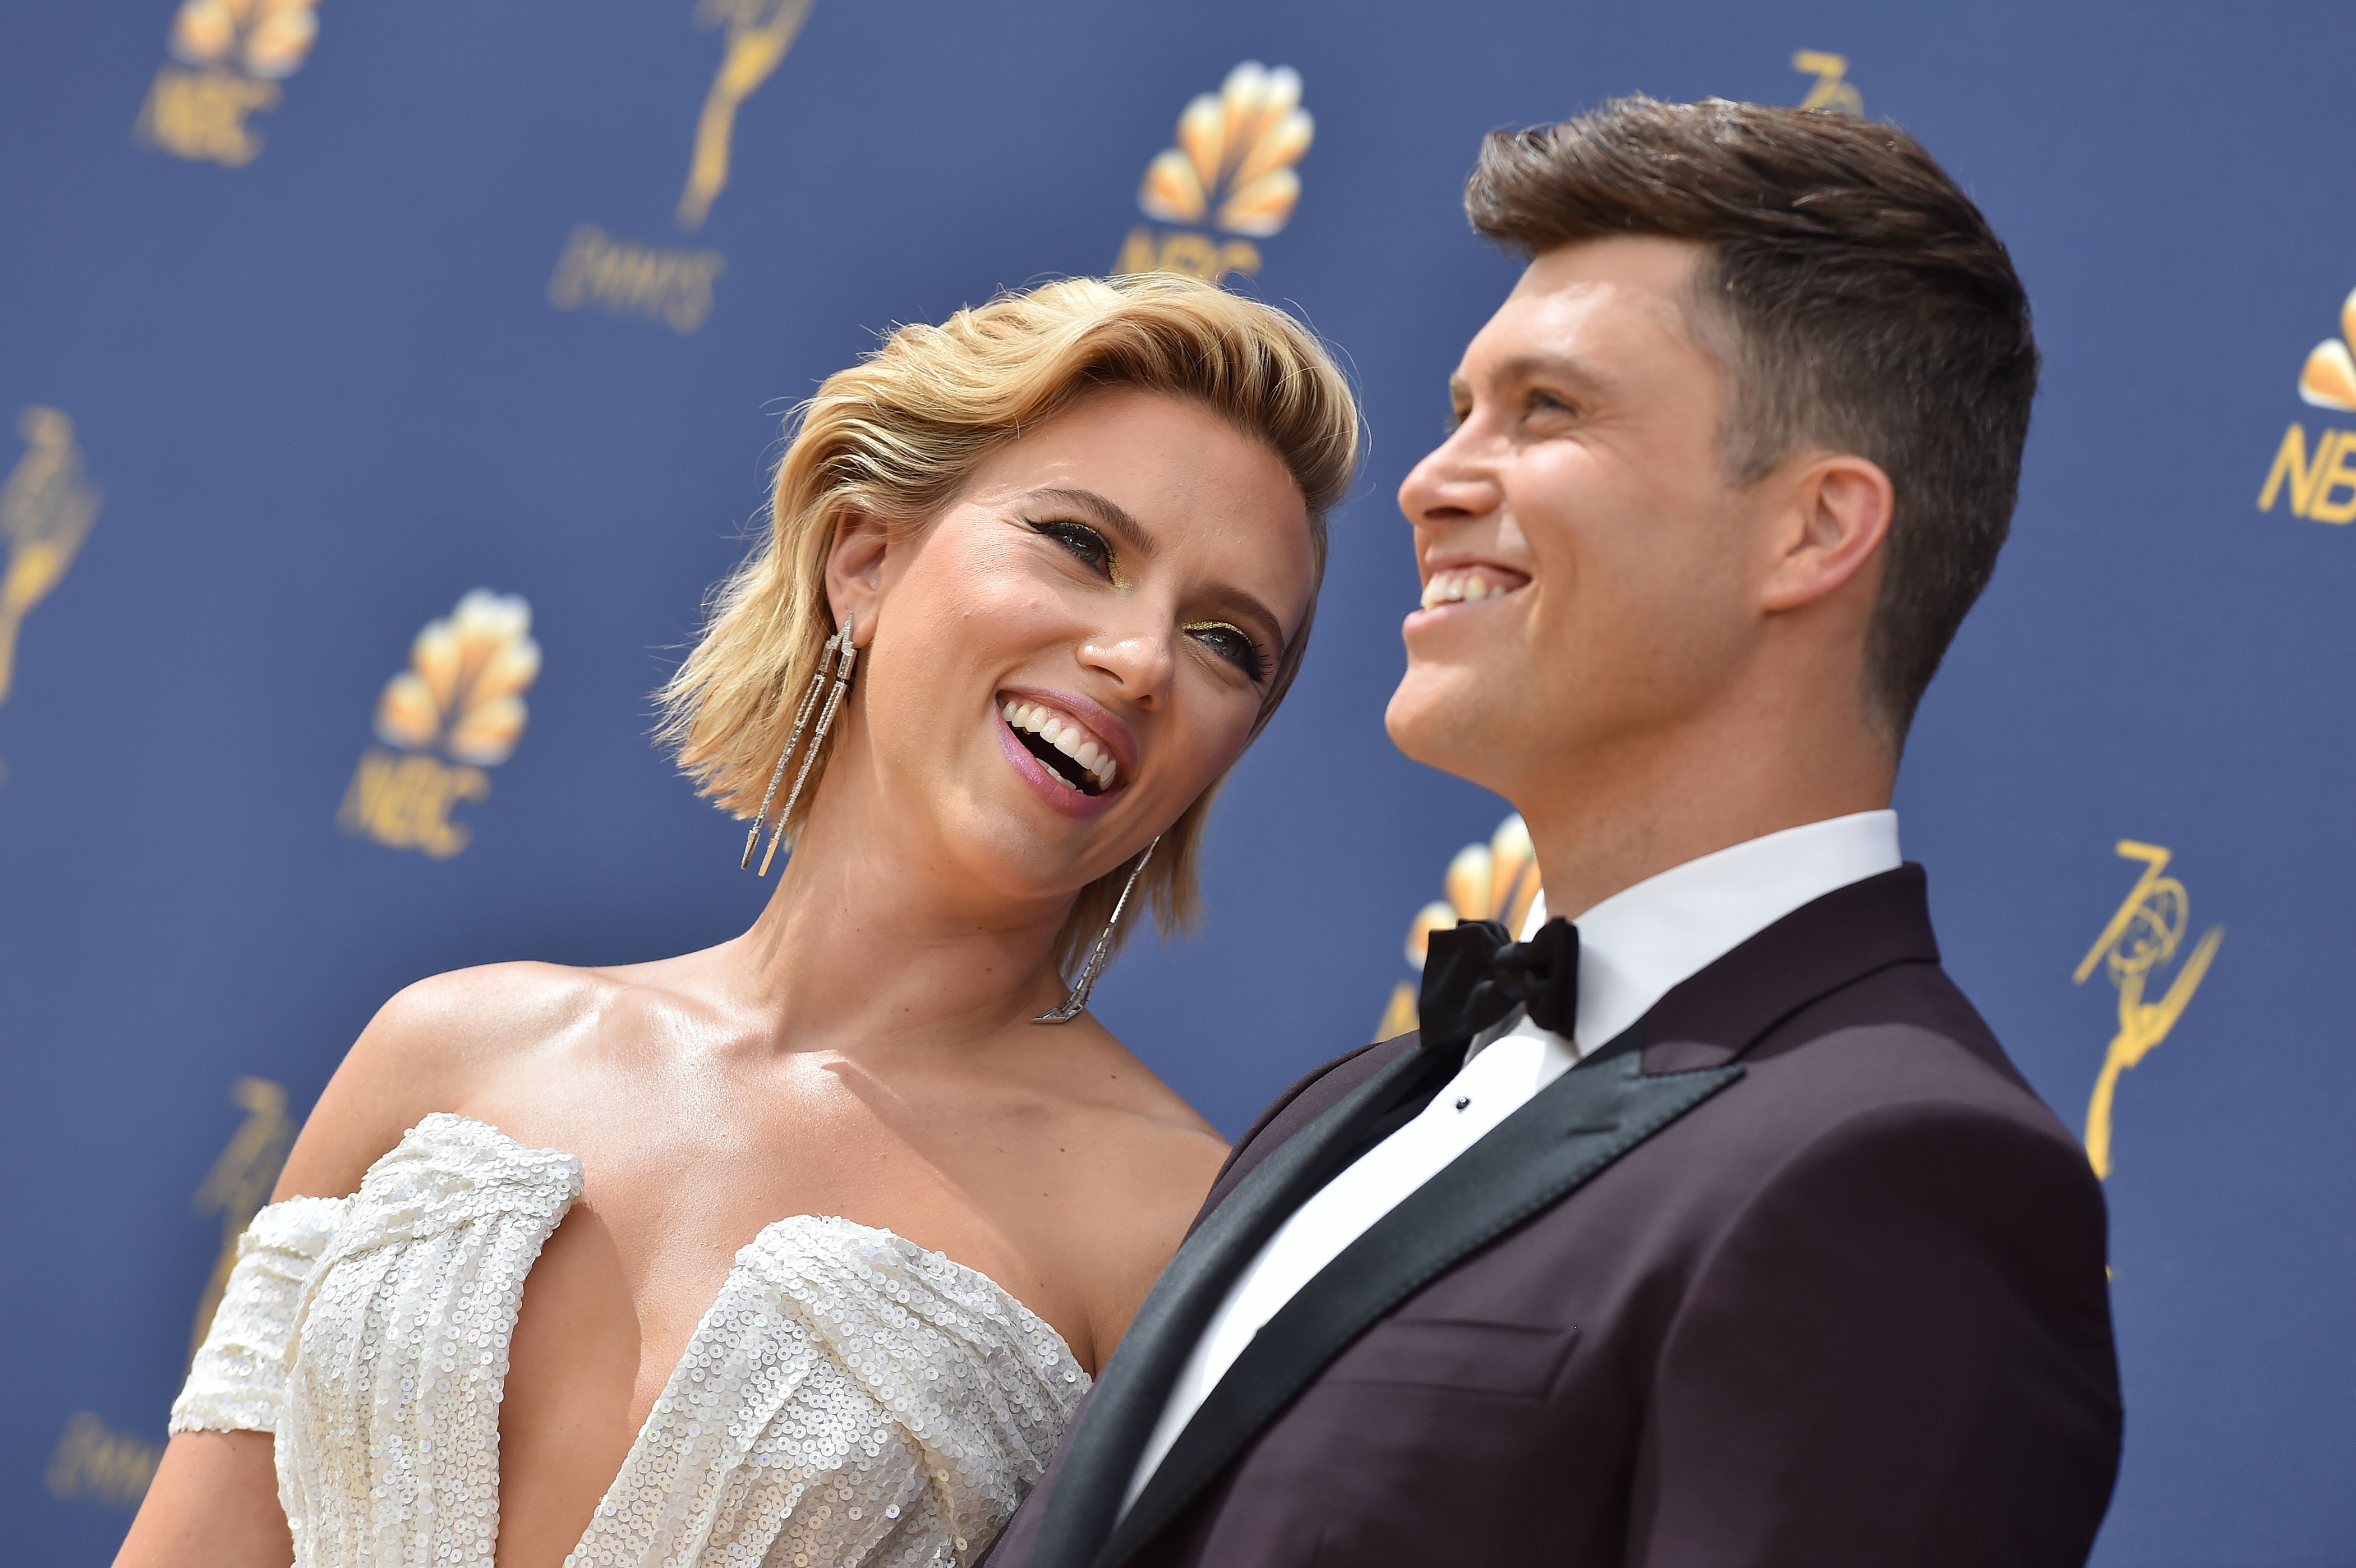 Colin Jost and Scarlett Johansson's Relationship—Everything You Need to Know